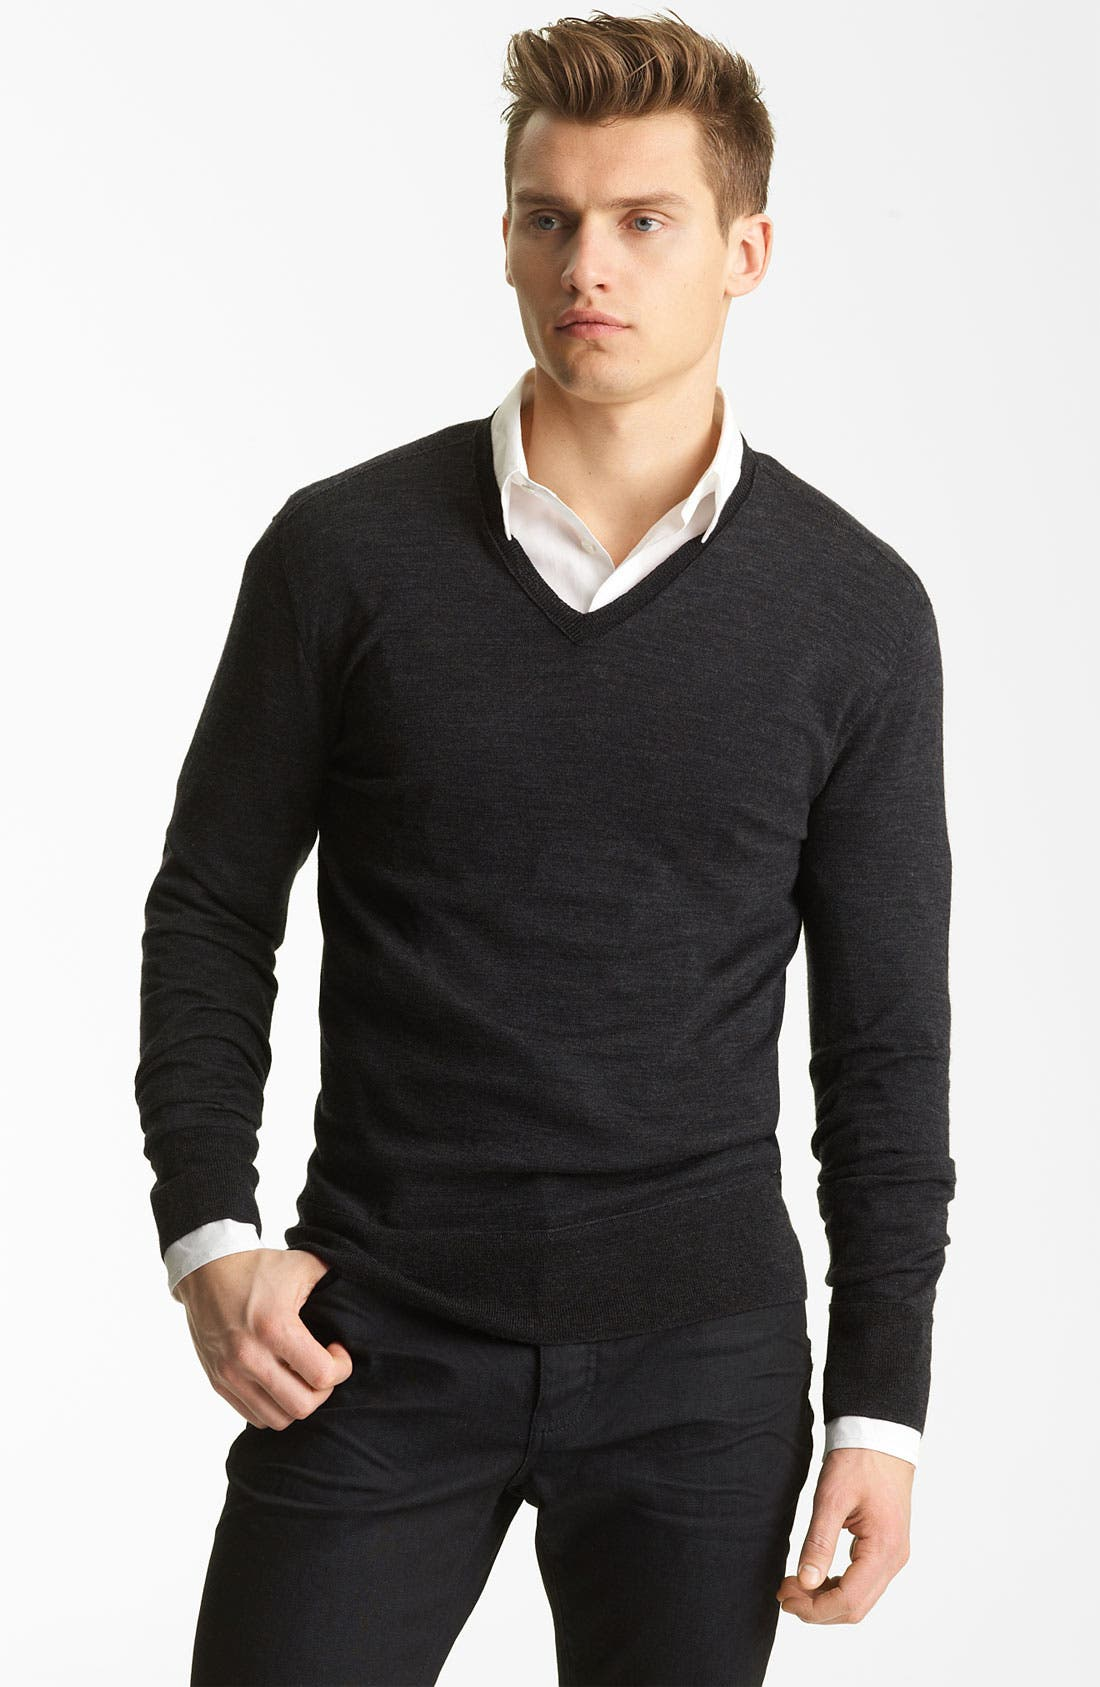 Alternate Image 1 Selected - John Varvatos Collection V-Neck Wool Knit Sweater